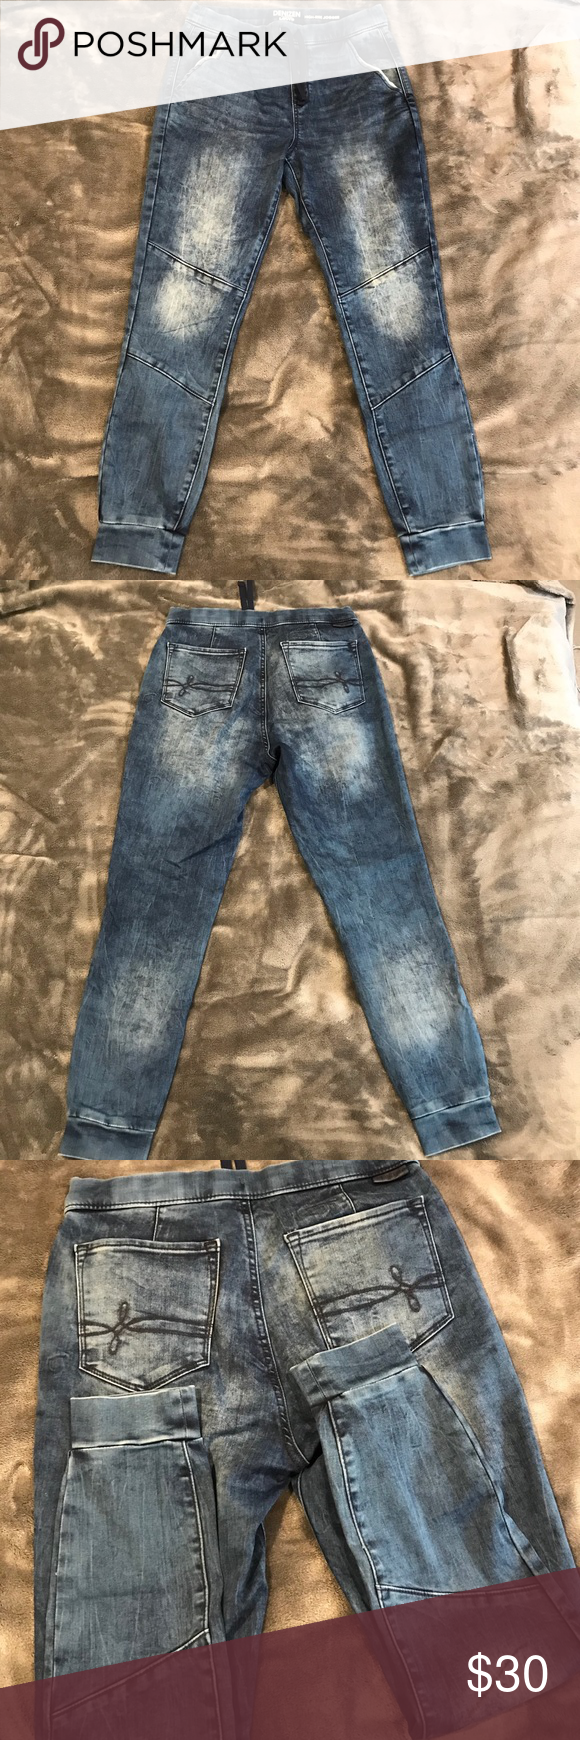 "834f128a Denizen from Levi's Joggers High Rise Joggers Waist 14"" Front Rise 11"" Hip  17"